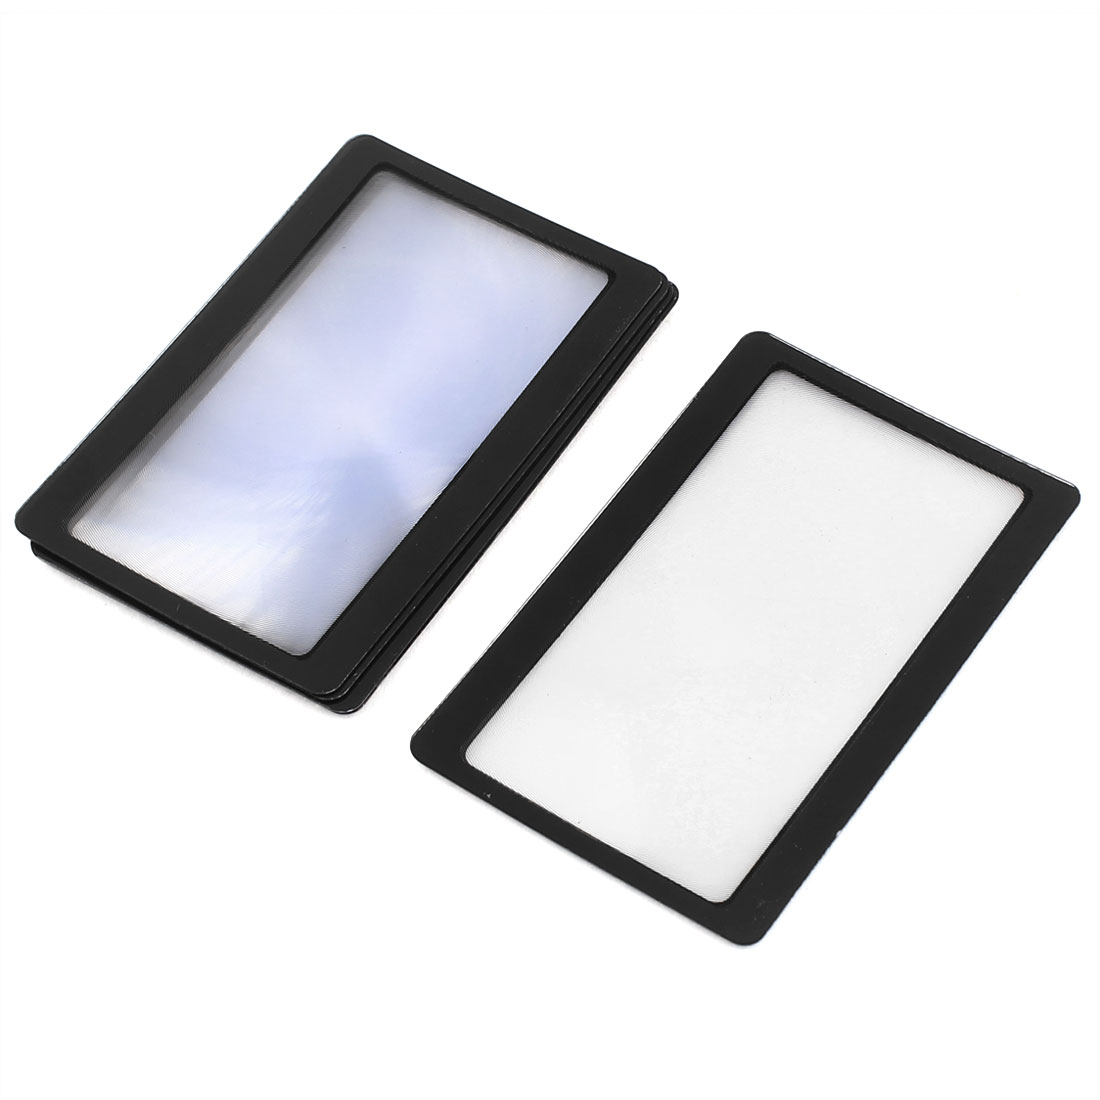 6 Pcs Black Frame Credit Card Reading Magnifier 3x Magnifying Wallet Loupe Lens